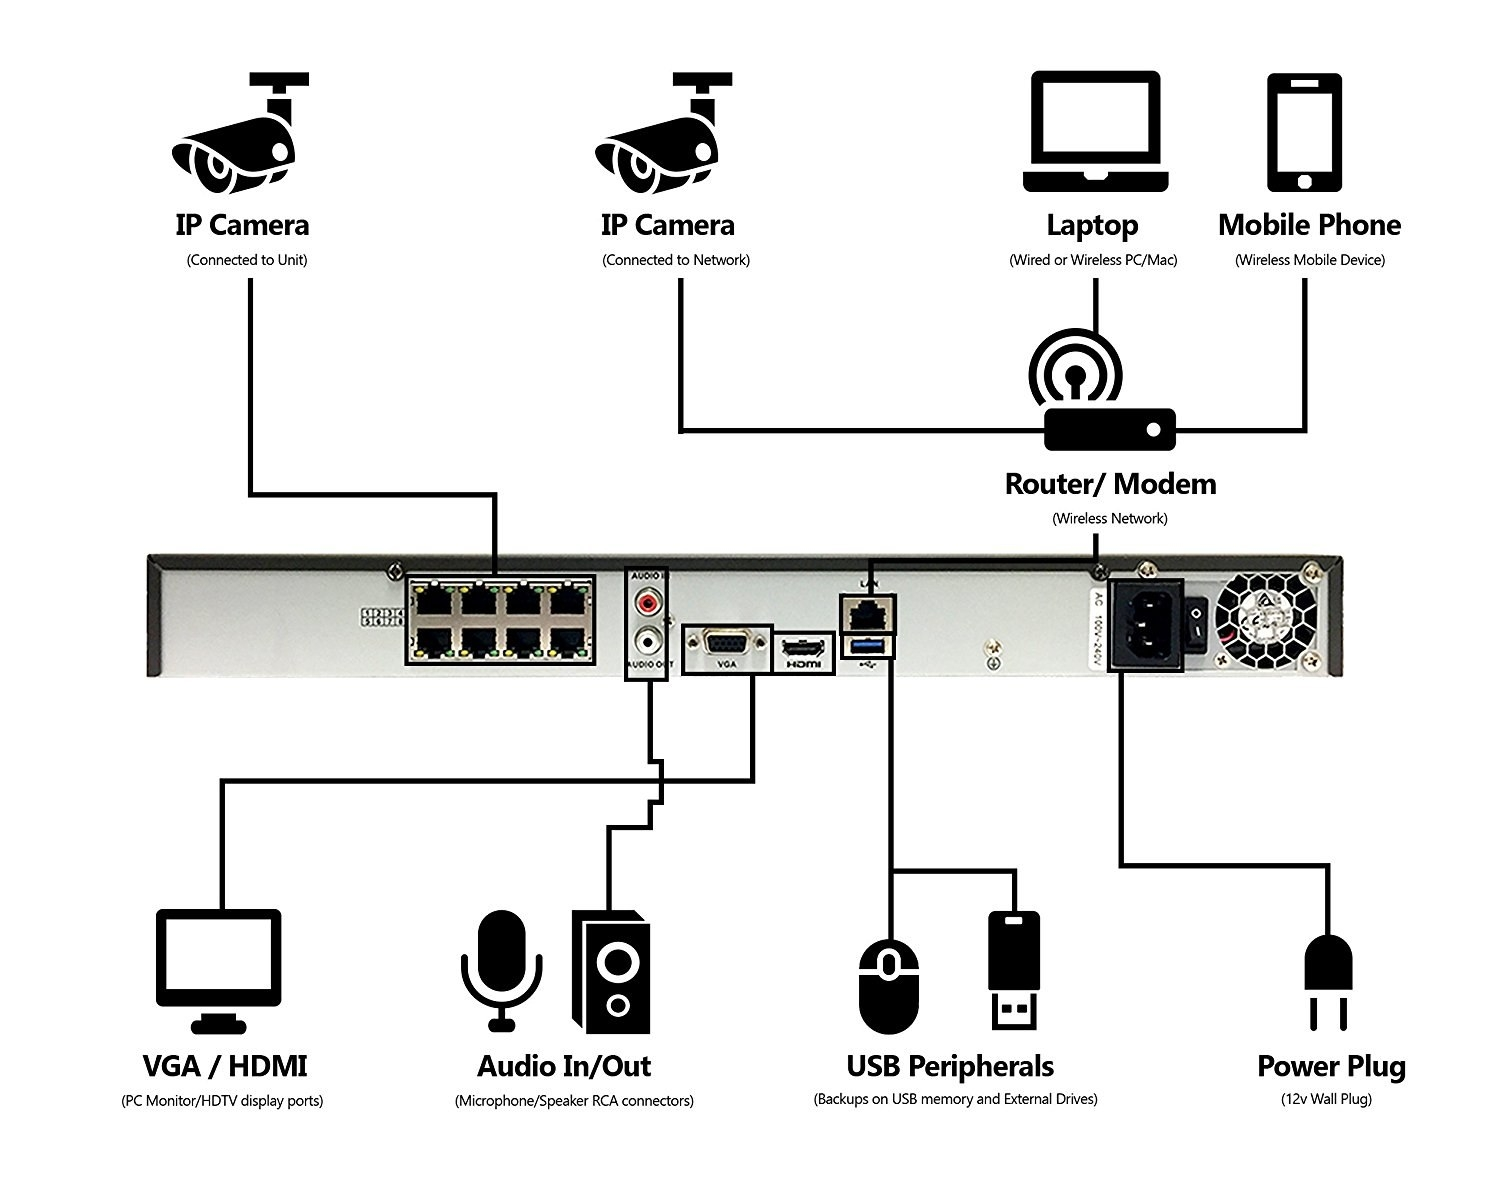 poe camera wiring diagram - network connection diagram brilliant poe  ethernetable wiring diagram dolgularomat5e diagrams wall